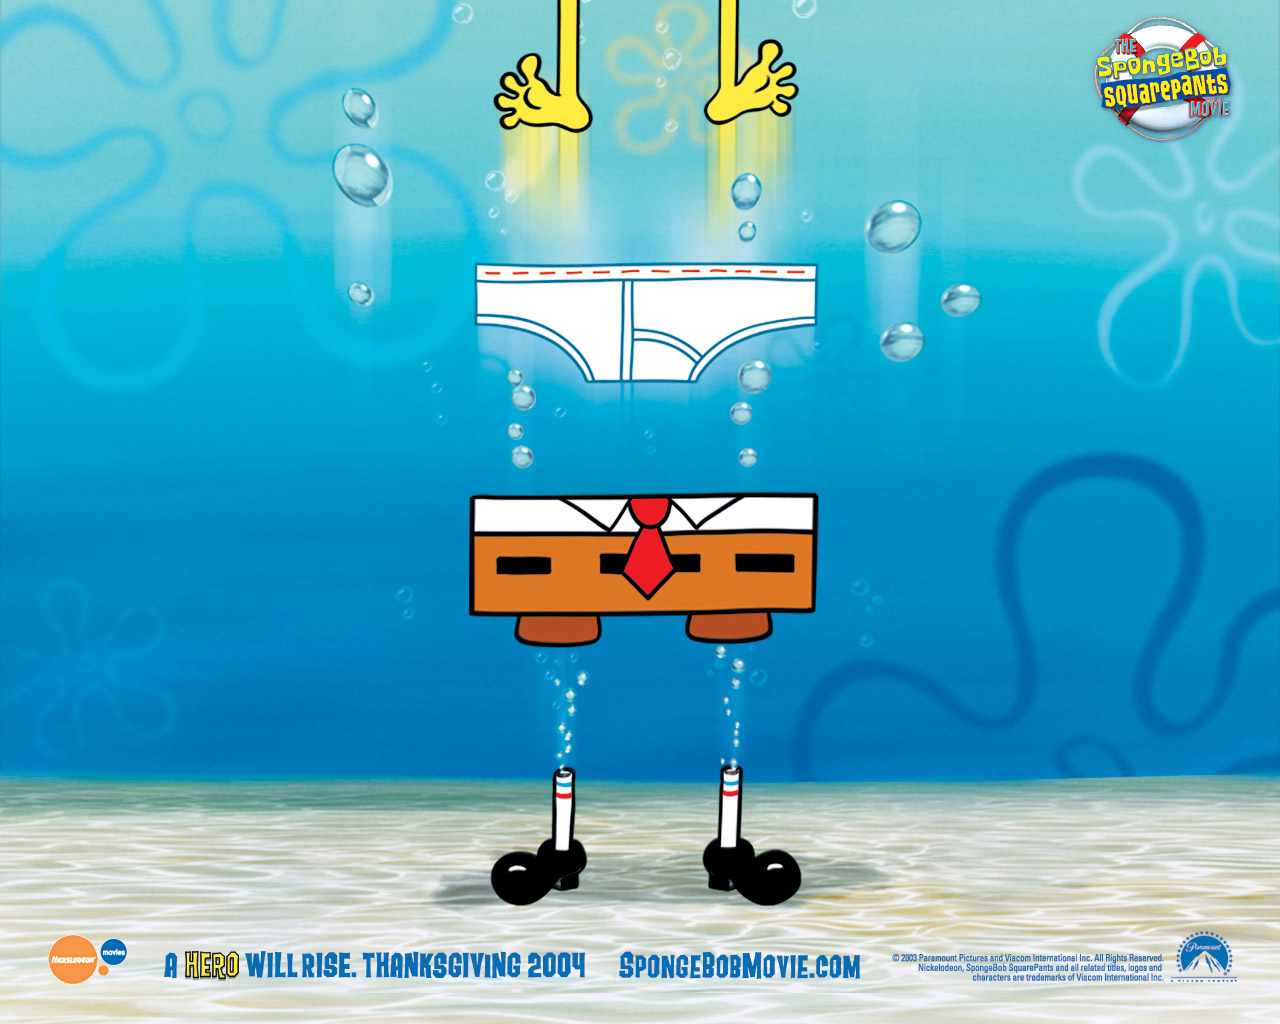 http://3.bp.blogspot.com/-i4nneJNIbfI/TeD8jxV3RlI/AAAAAAAAByg/UsmBk589VT4/s1600/The+Spongebob+Squarepants+Movie-02.jpg